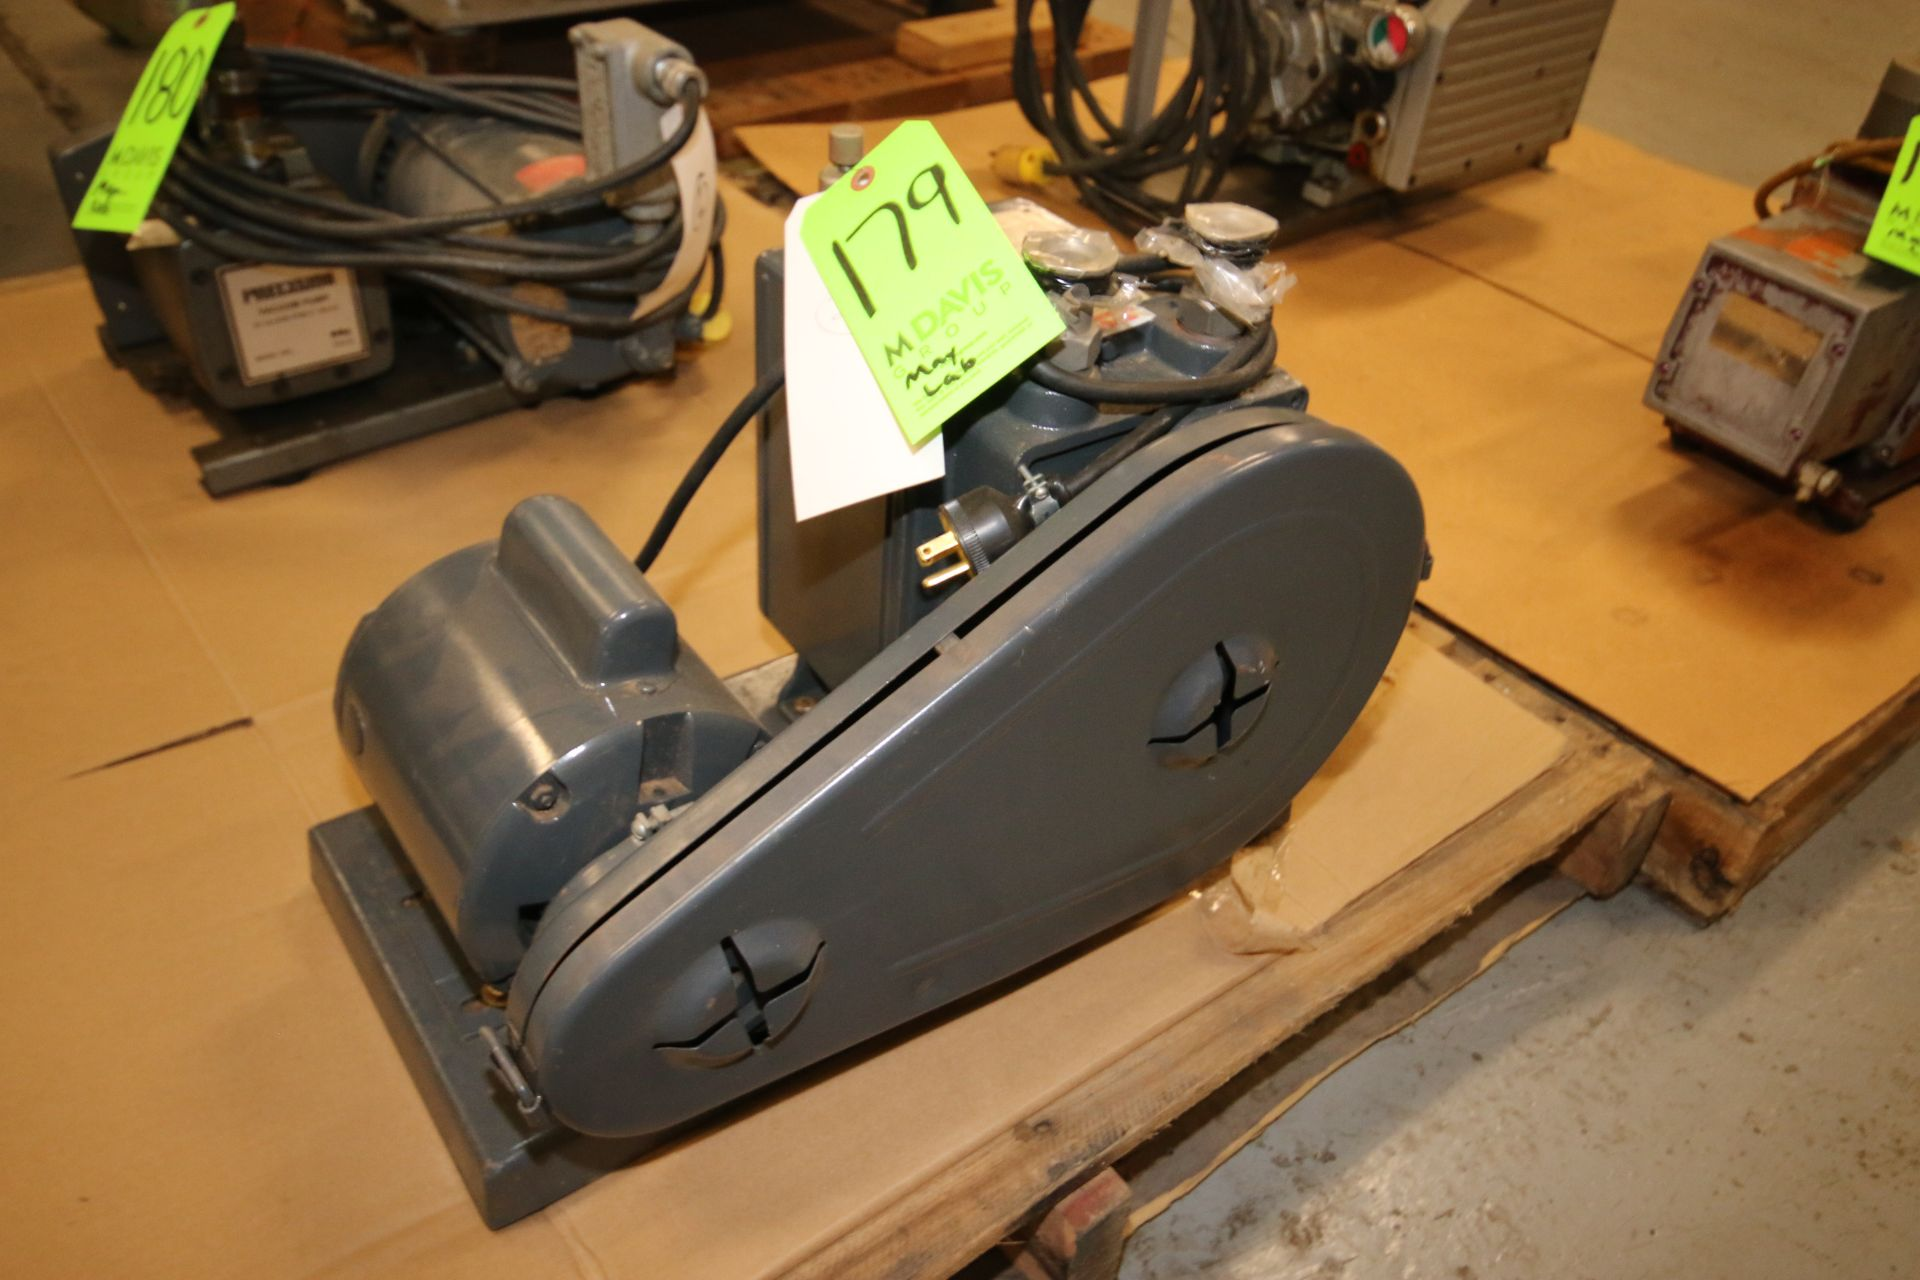 Lot 179 - Duo Seal 1/2 hp Vacuum Pump, M/N 1402, S/N 360190, 115/230 Volts, 1725 RPM